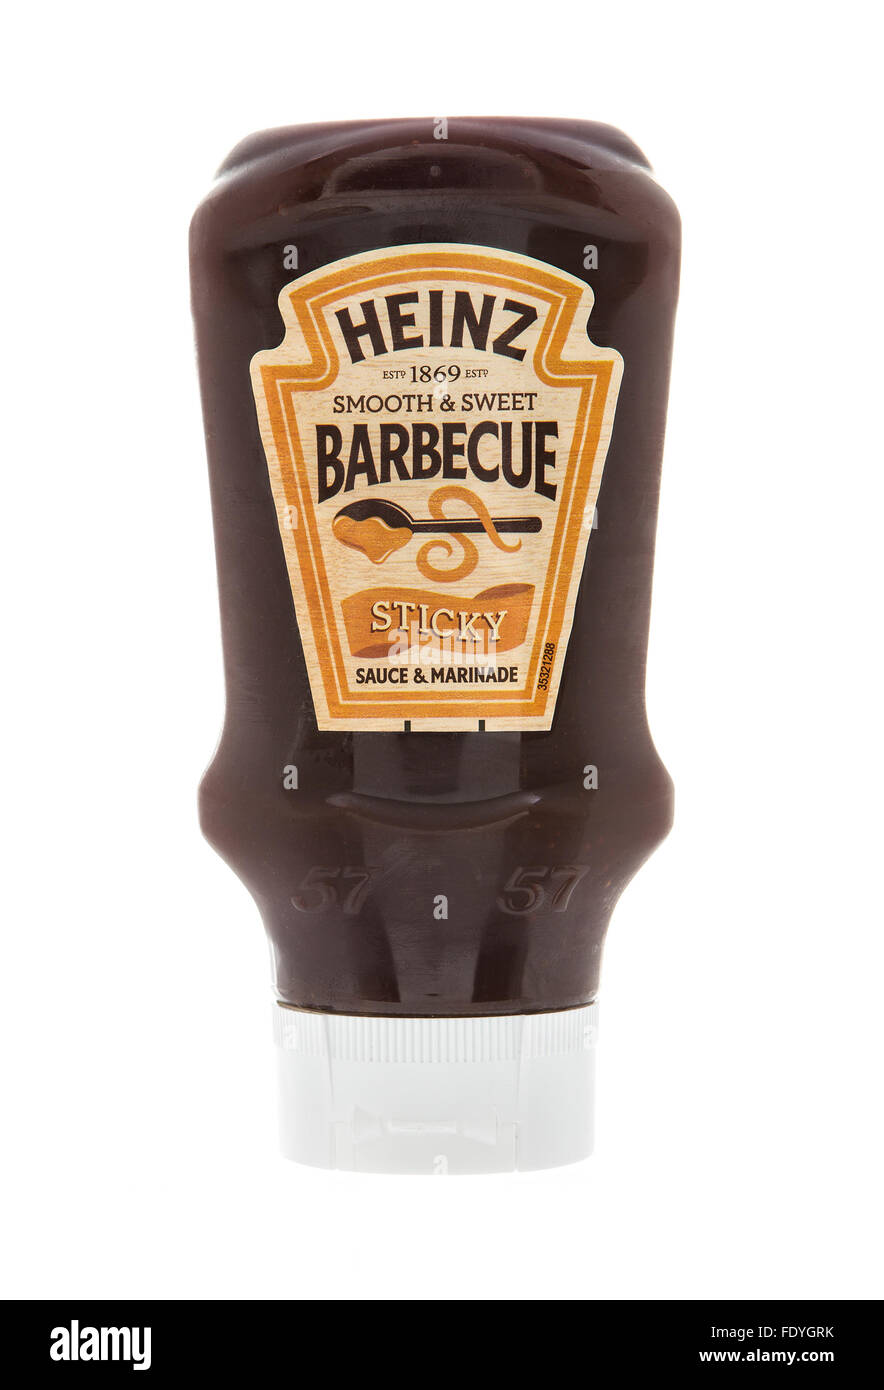 Bottle of Heinz Smooth And Sweet Barbecue Sticky Sauce And Marinade on a White Background - Stock Image